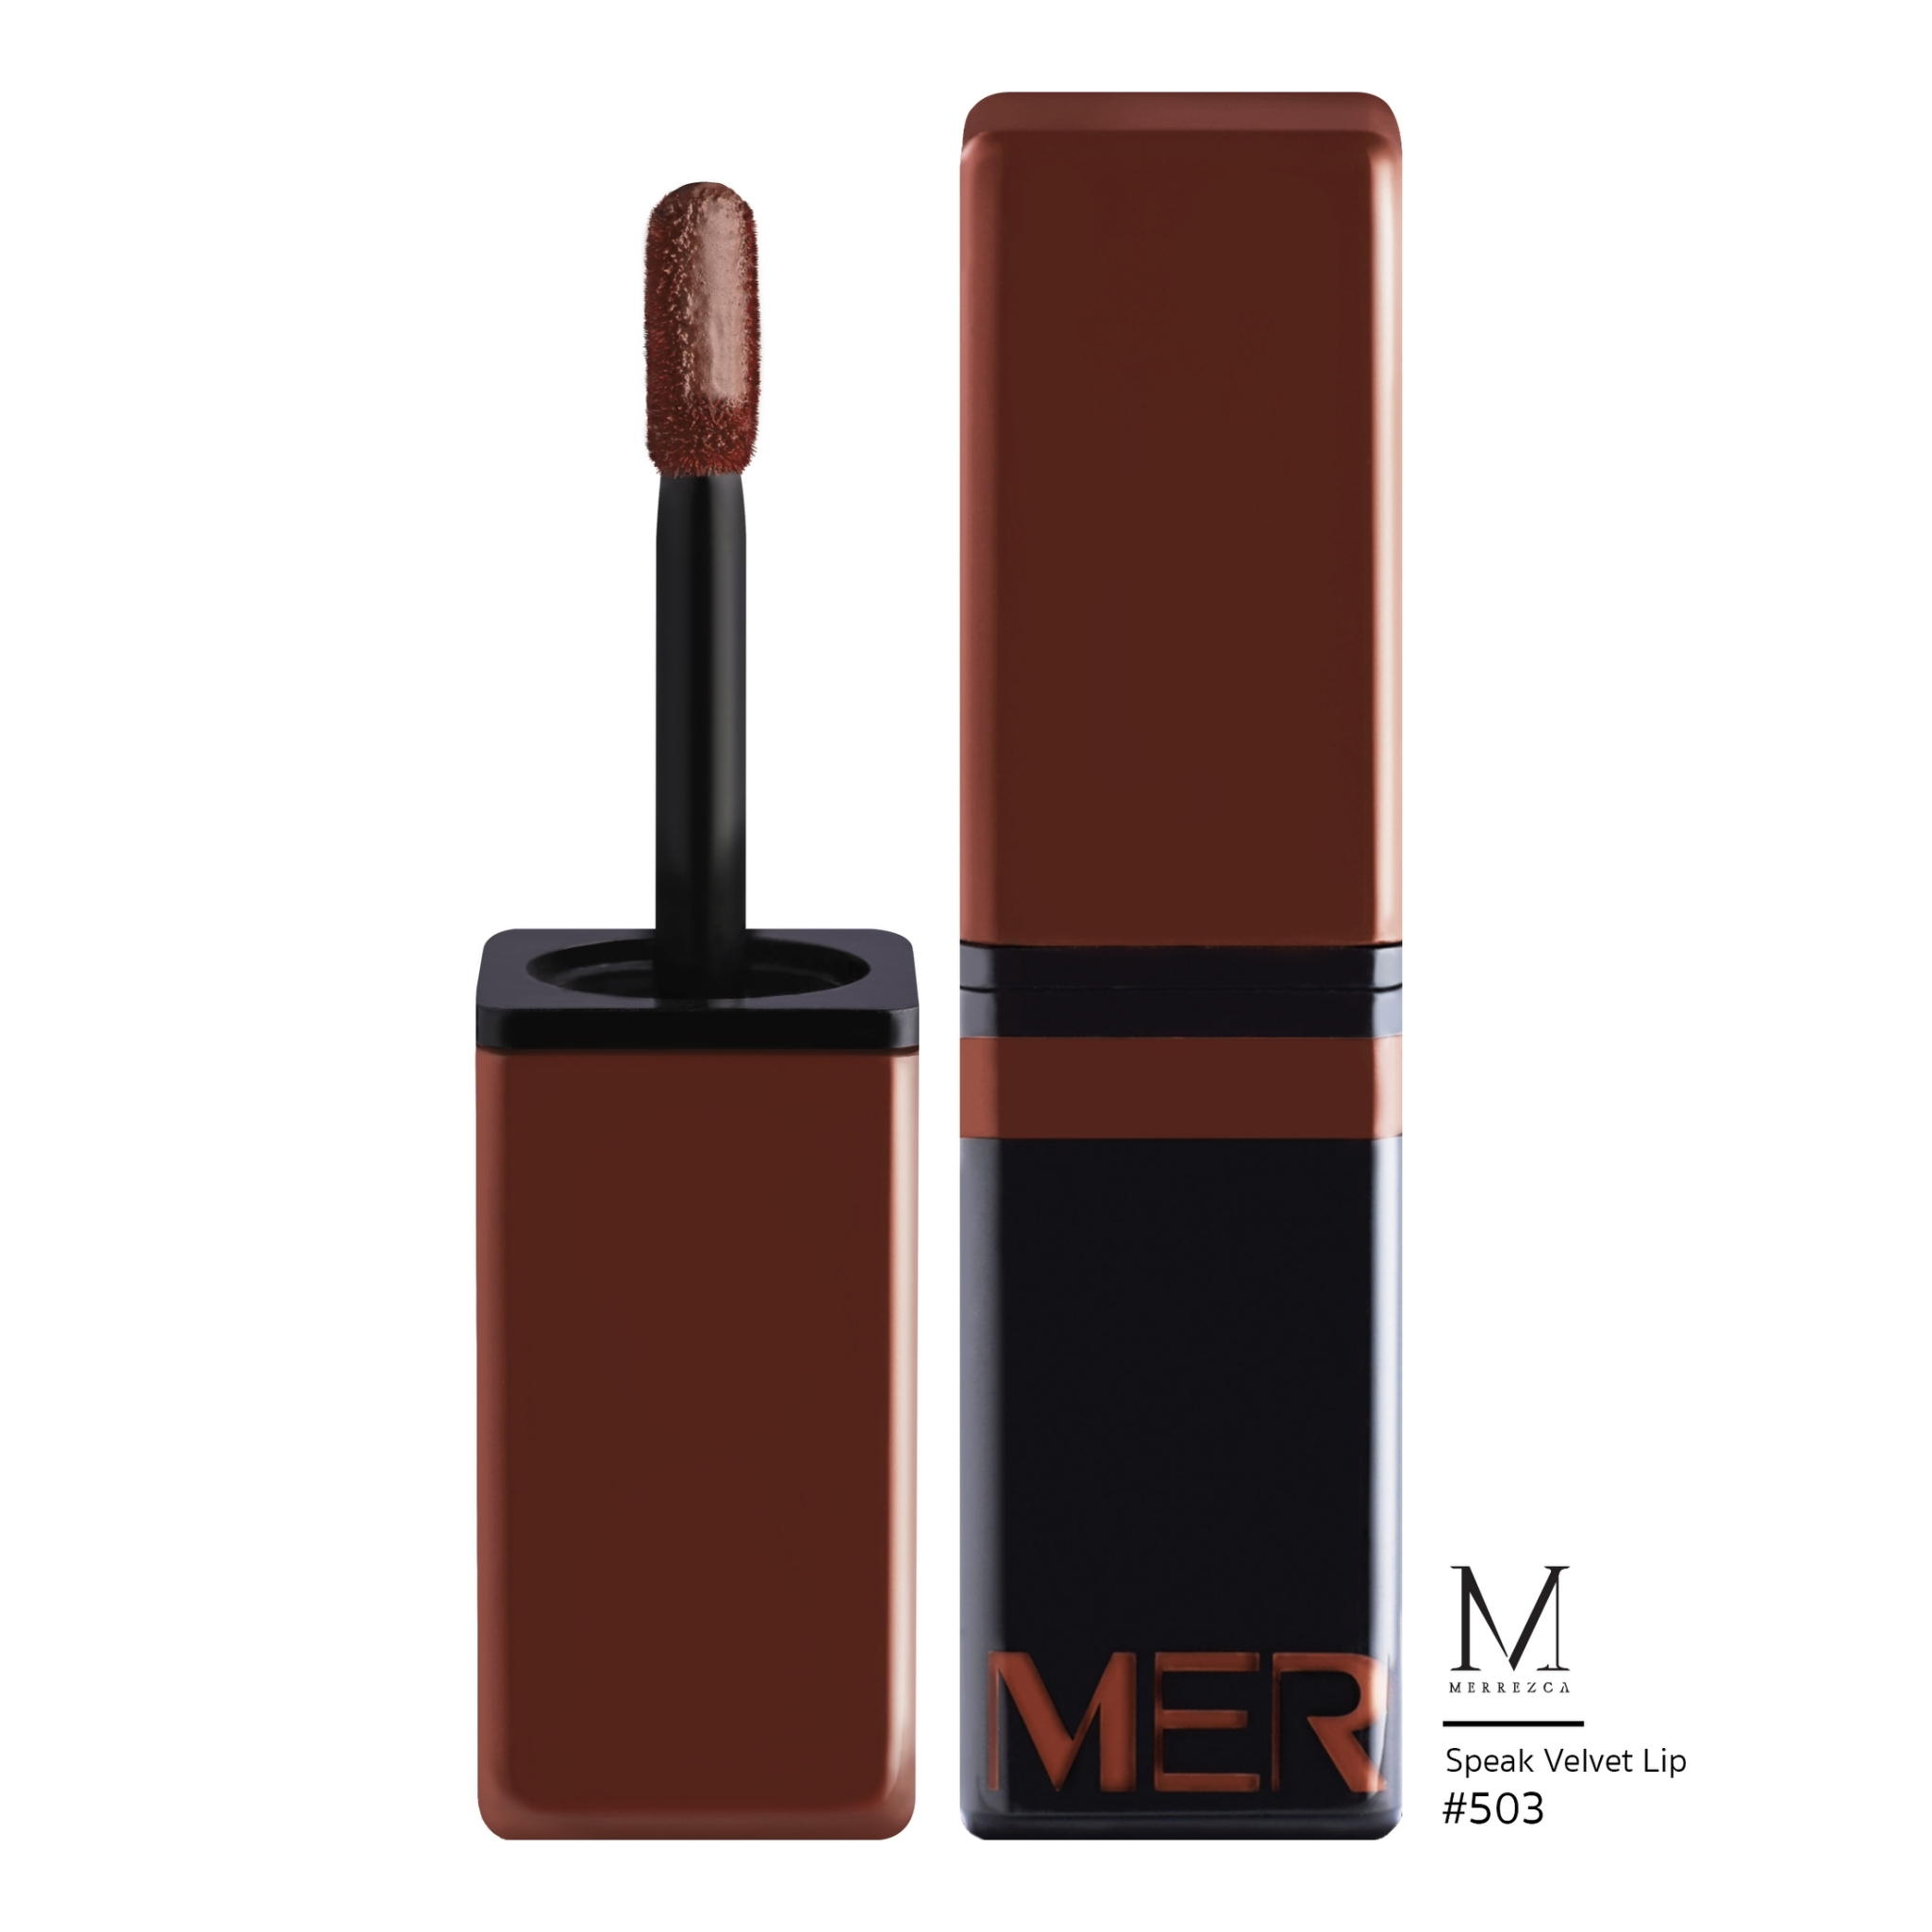 Merrez'ca Speak Velvet Lip # 503